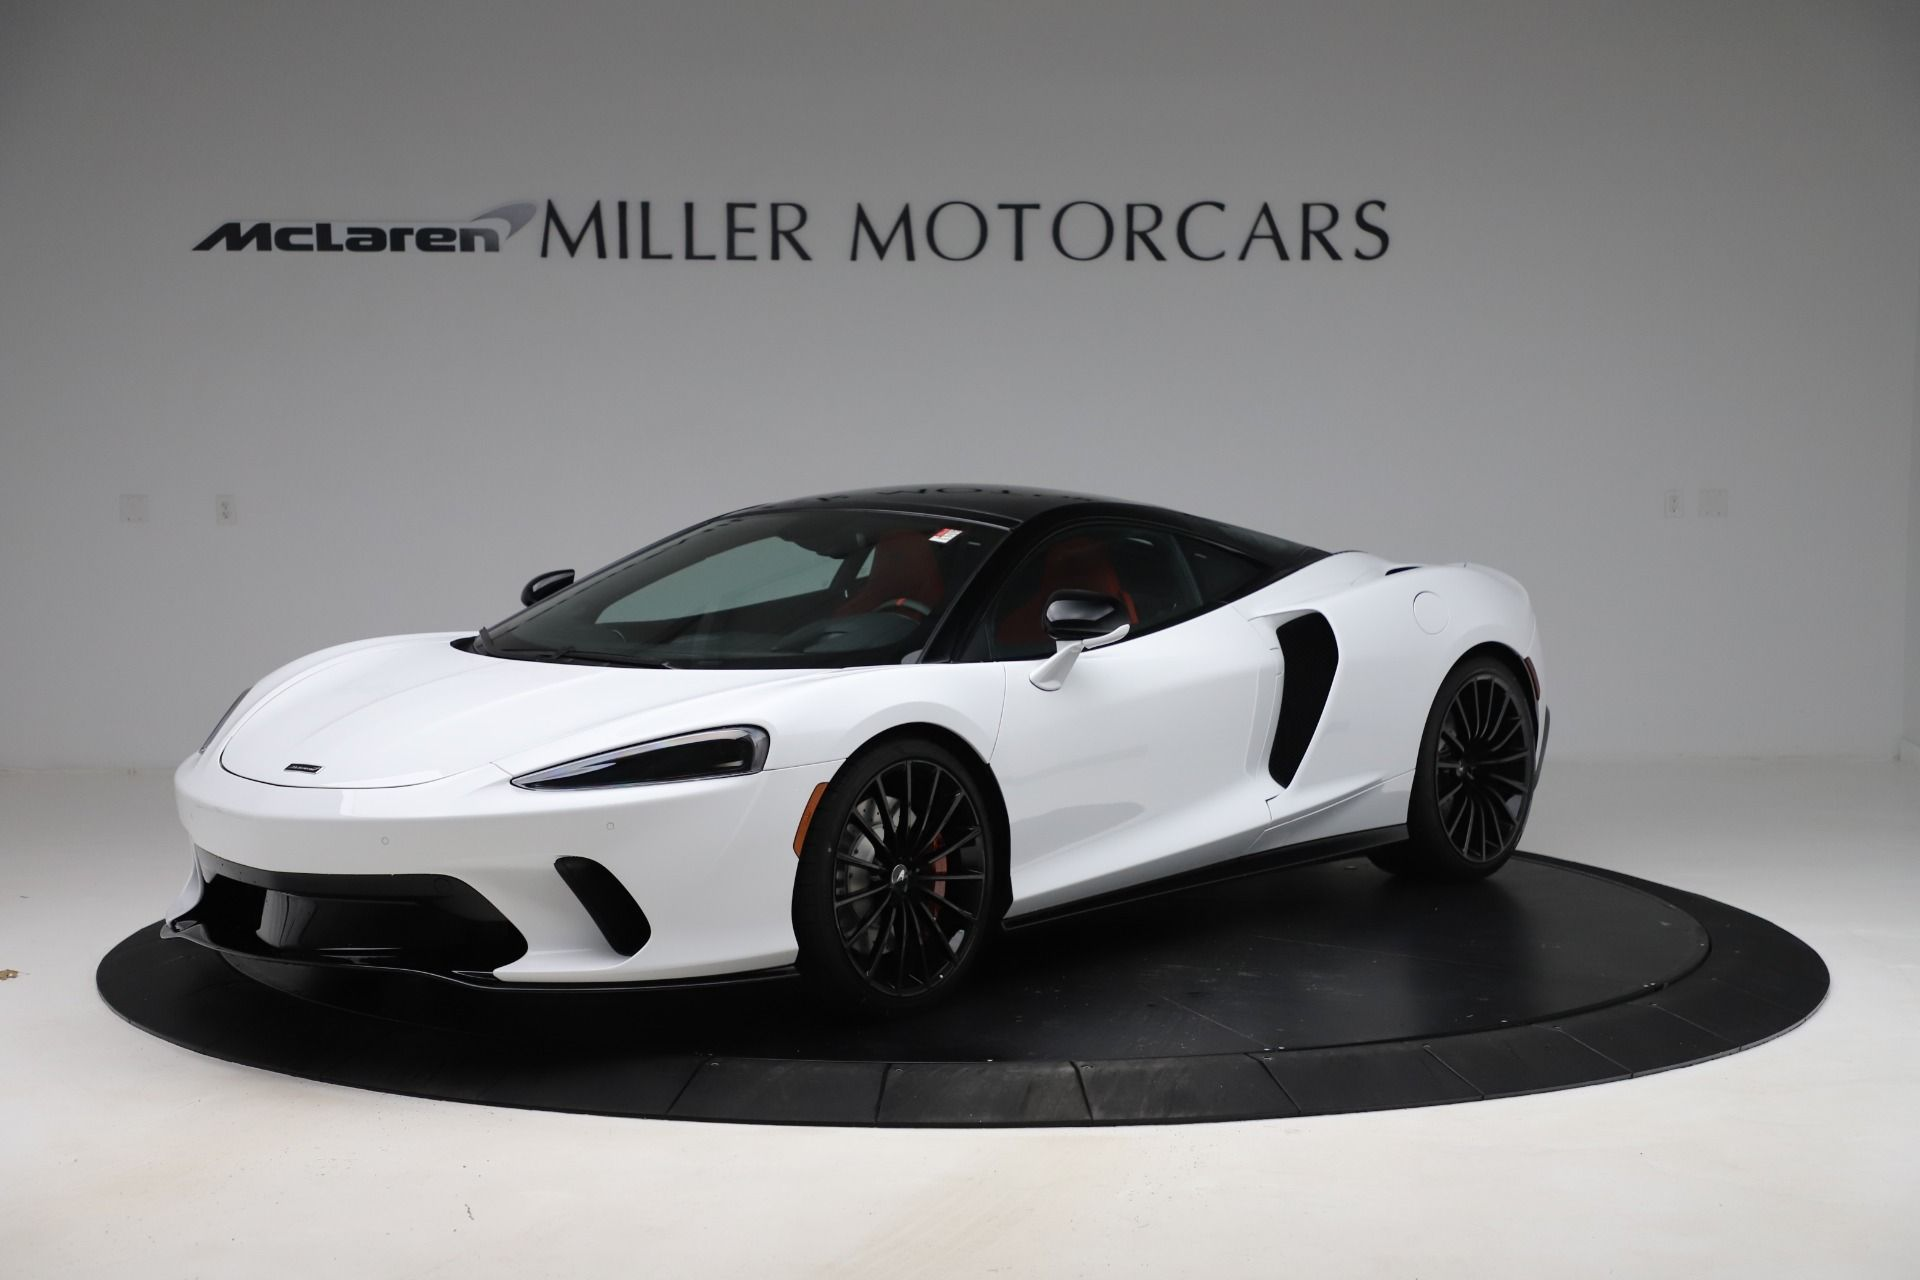 For Sale 2020 Mclaren Gt Coupe Miller Motorcars United States For Sale On Luxurypulse In 2020 Coupe Super Cars Mclaren